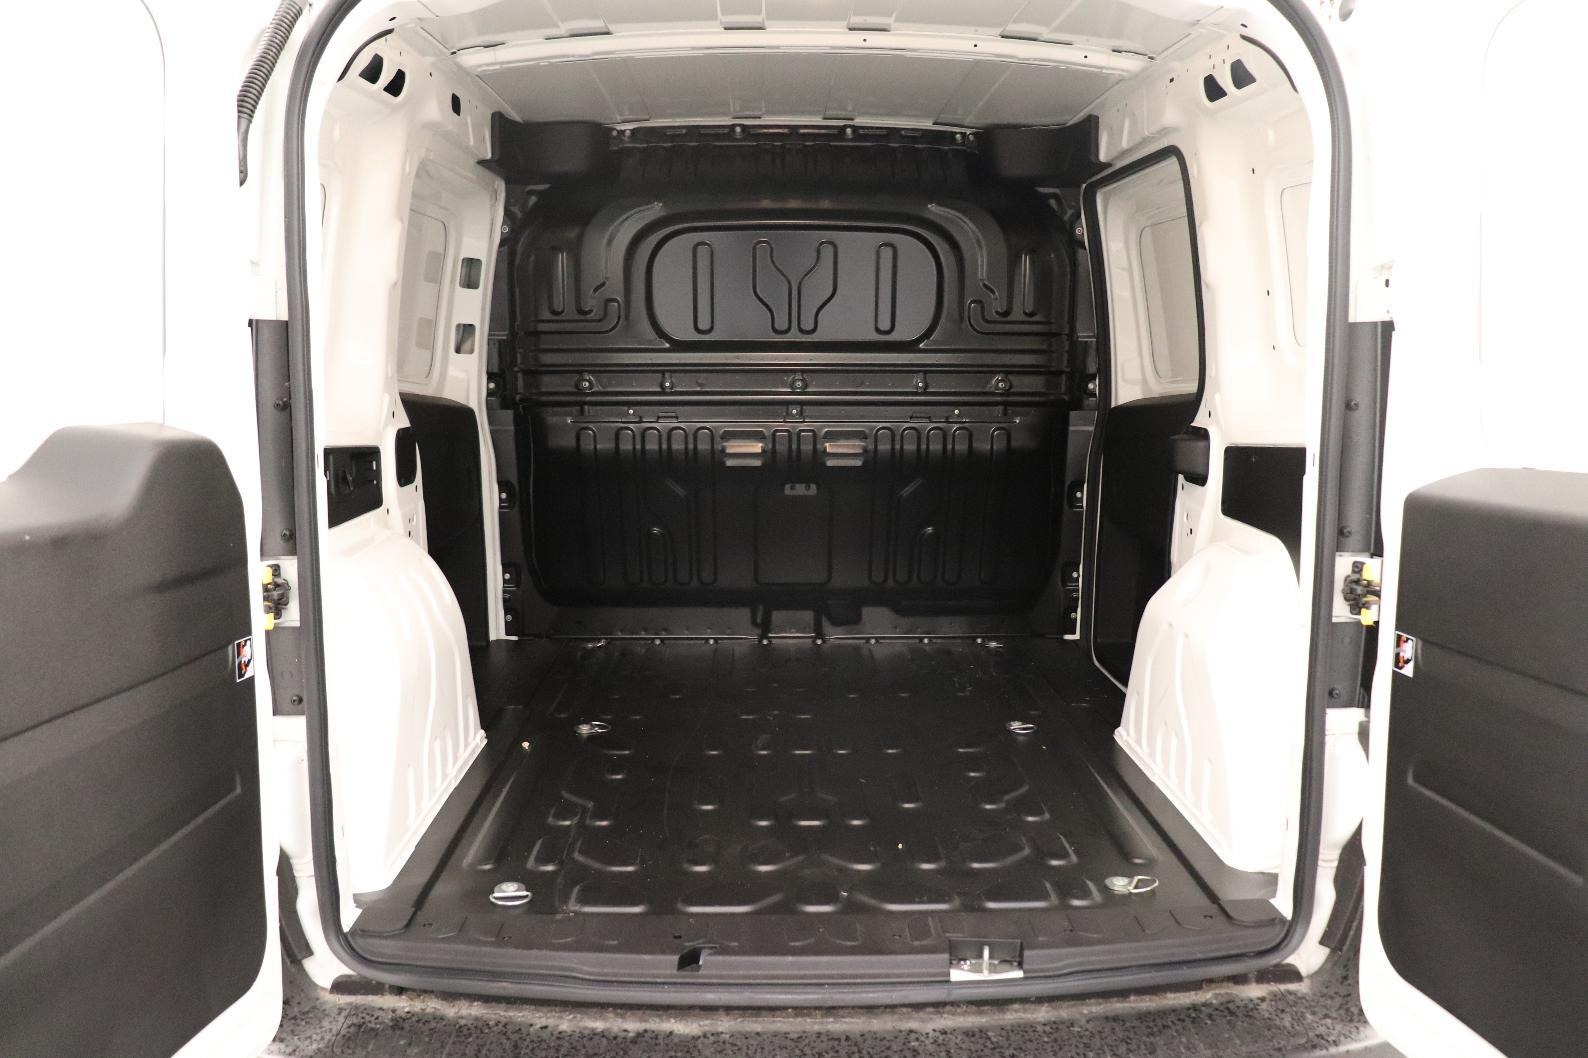 FIAT DOBLO CARGO EURO 6D-TEMP FT 1.6 MULTIJET 105 PACK